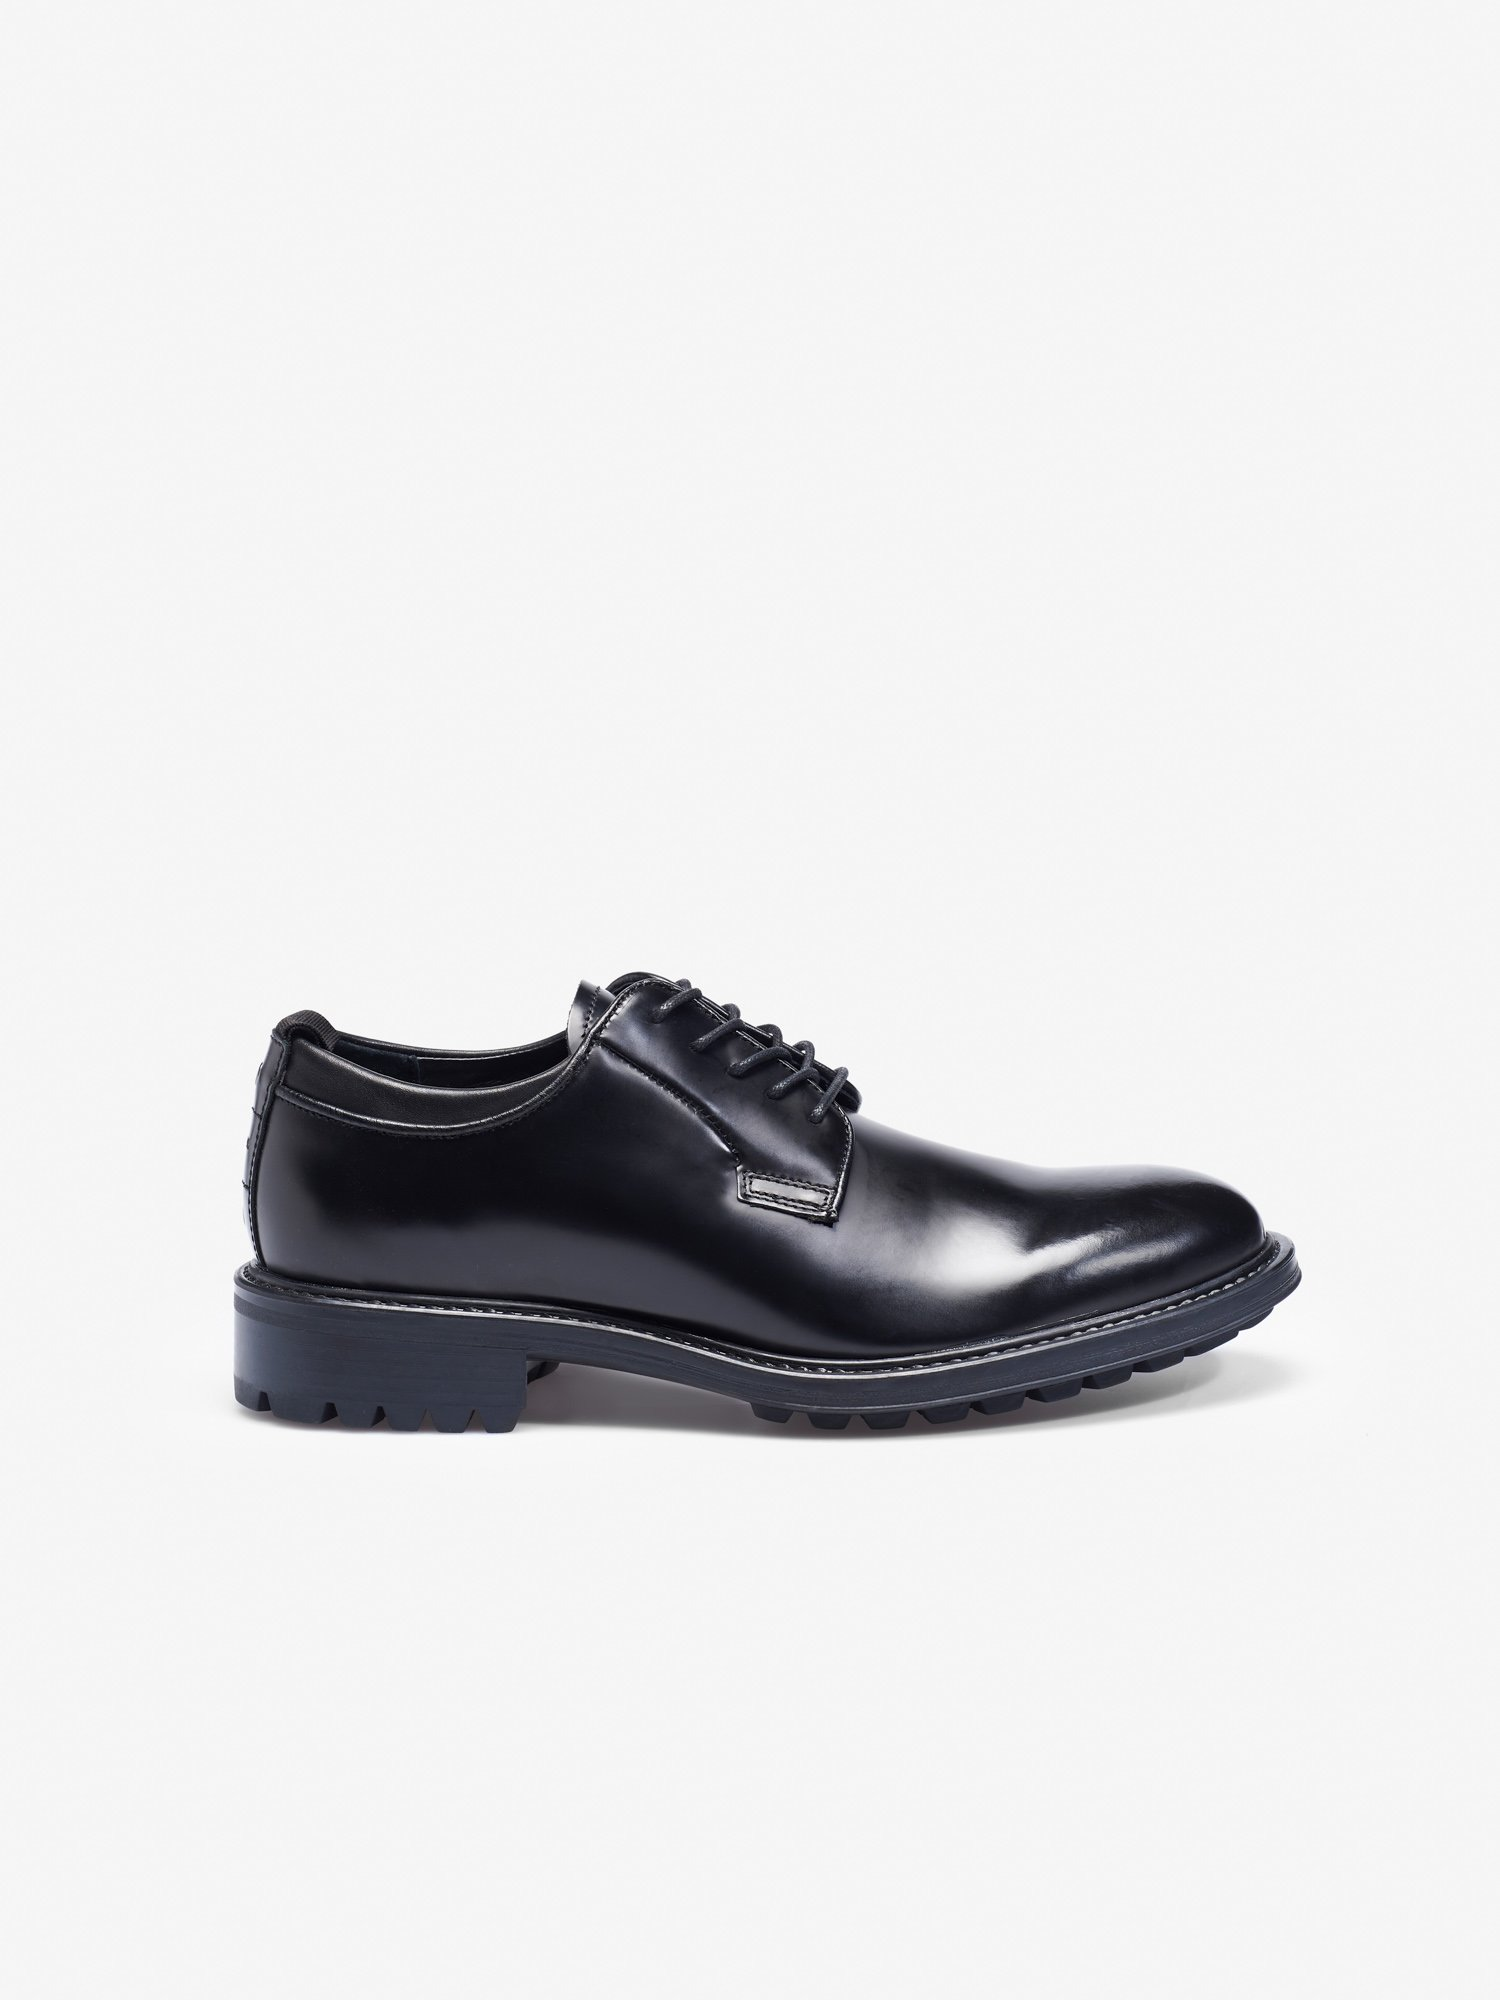 LACE UP SHINY DERBY SHOES - Blauer